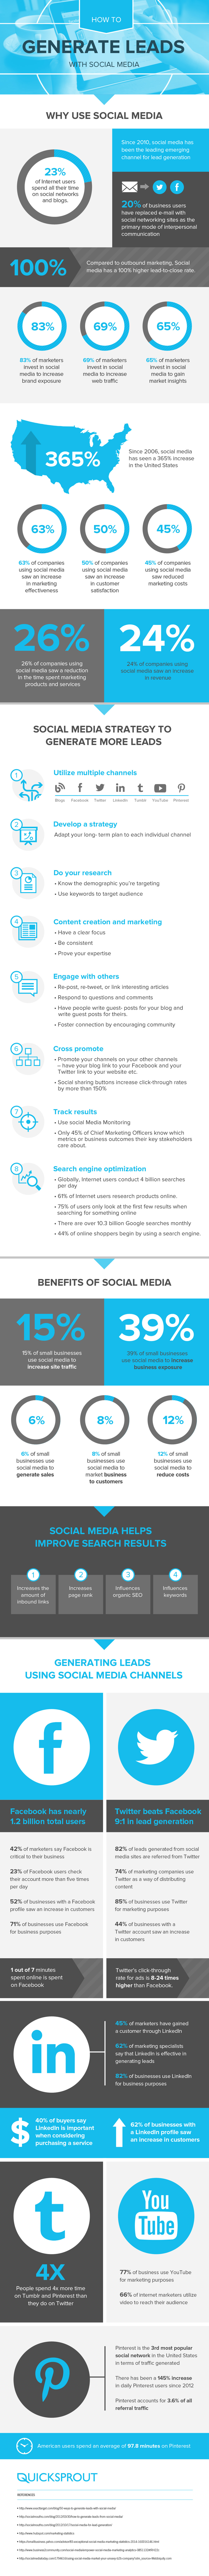 how-to-get-more-leads-with-social-media-infographic